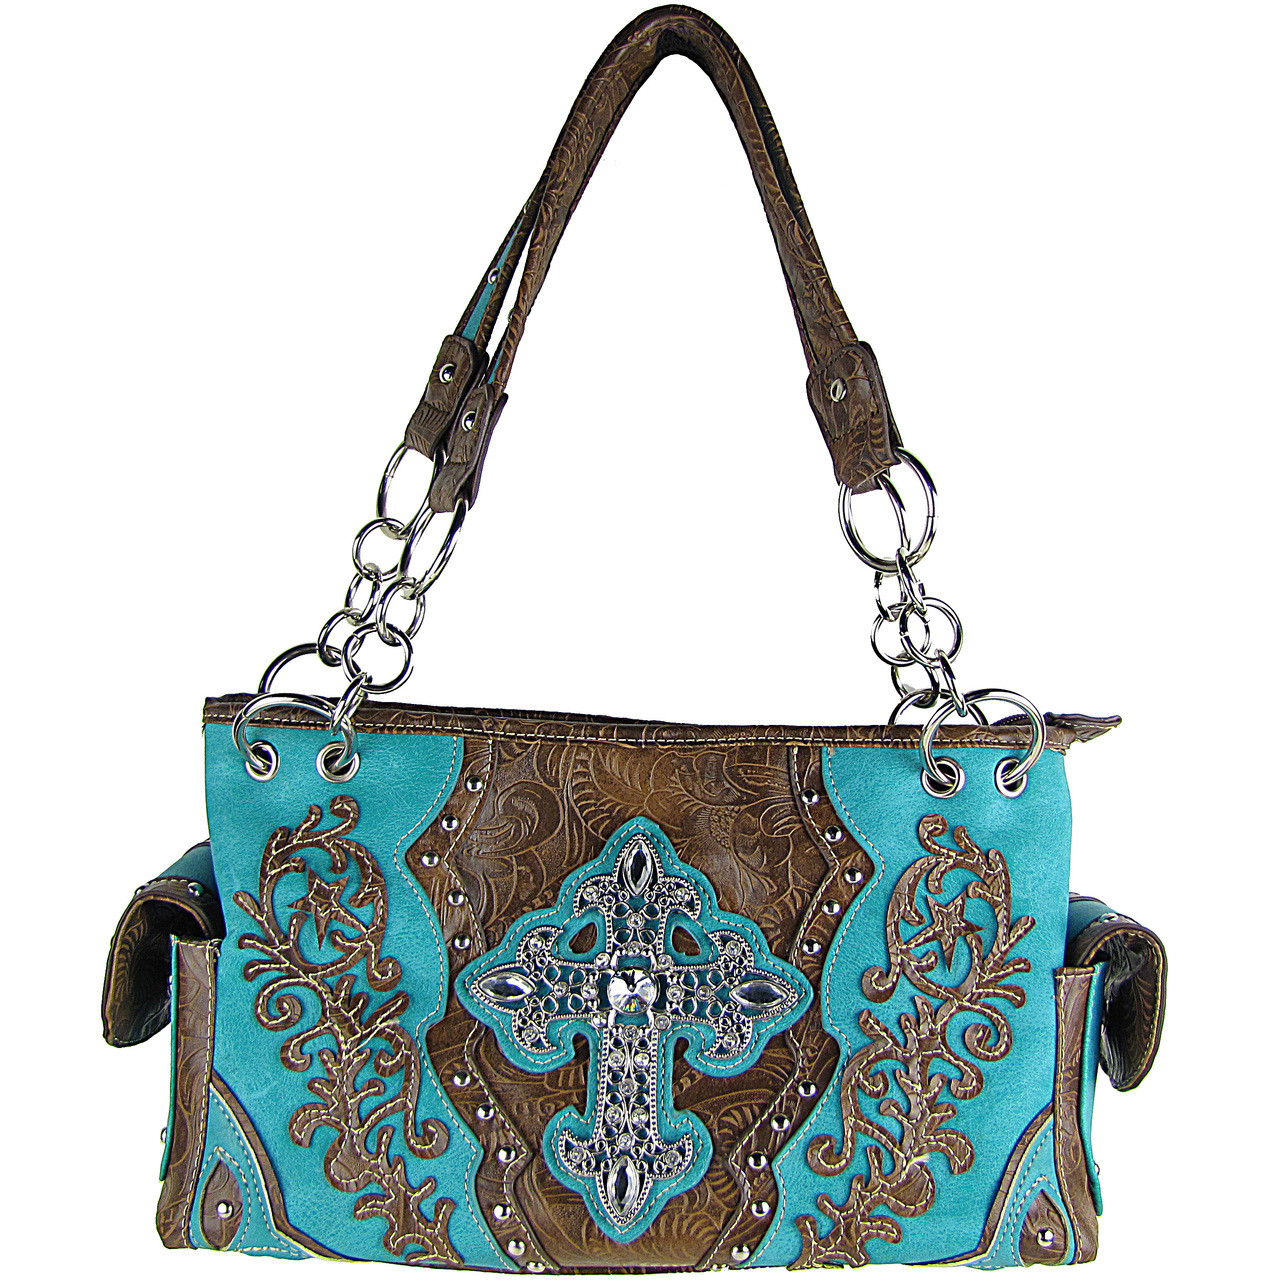 TURQUOISE RHINESTONE BUCKLE LOOK SHOULDER HANDBAG HB1-63LCRTRQ